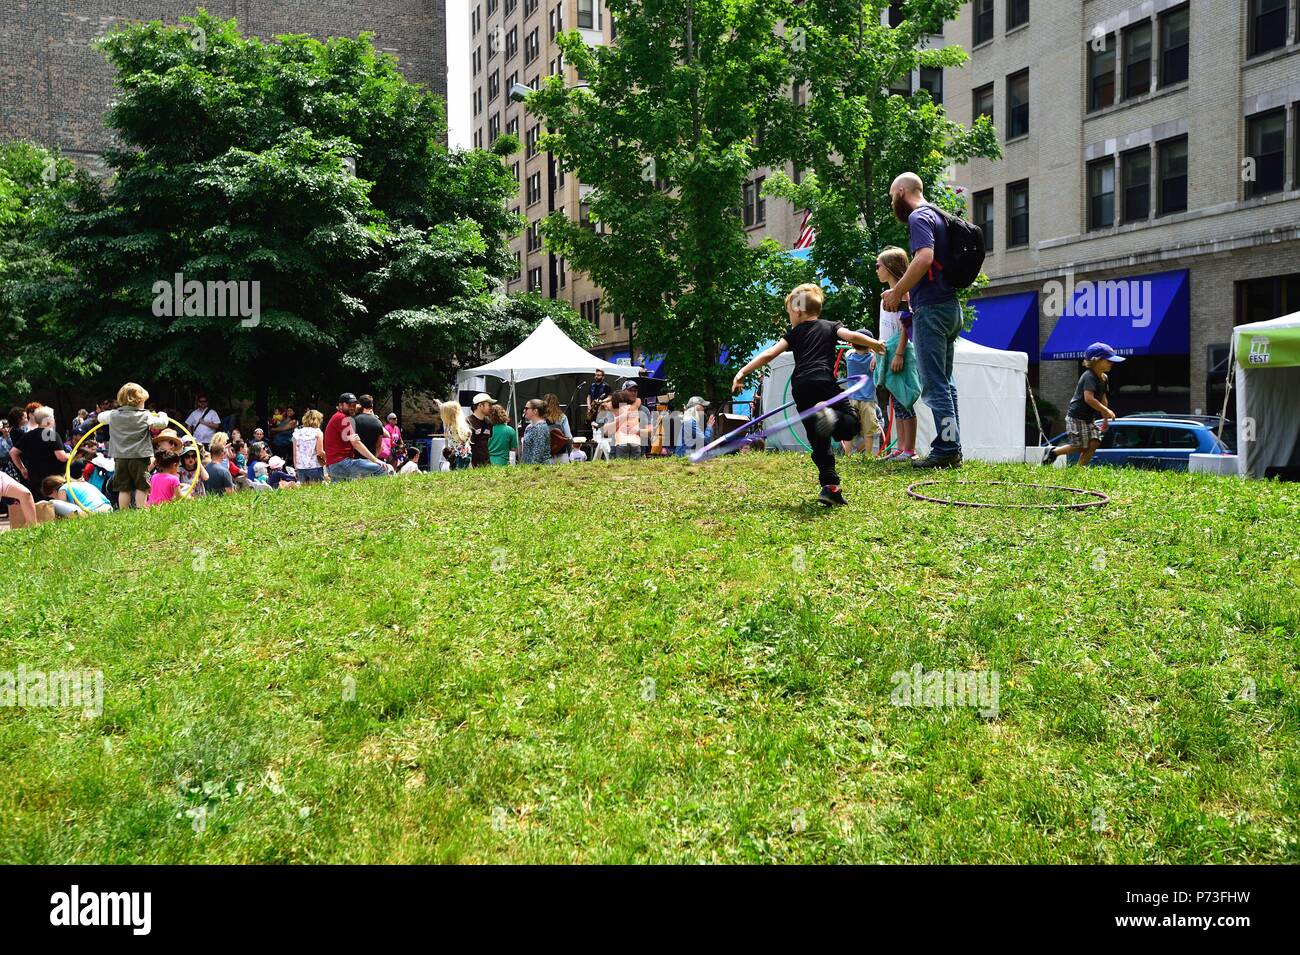 Chicago, Illinois, USA. Children play with Hula Hoops as others take in a concert in a small park as part of the annual Printers Row Lit Fest. - Stock Image